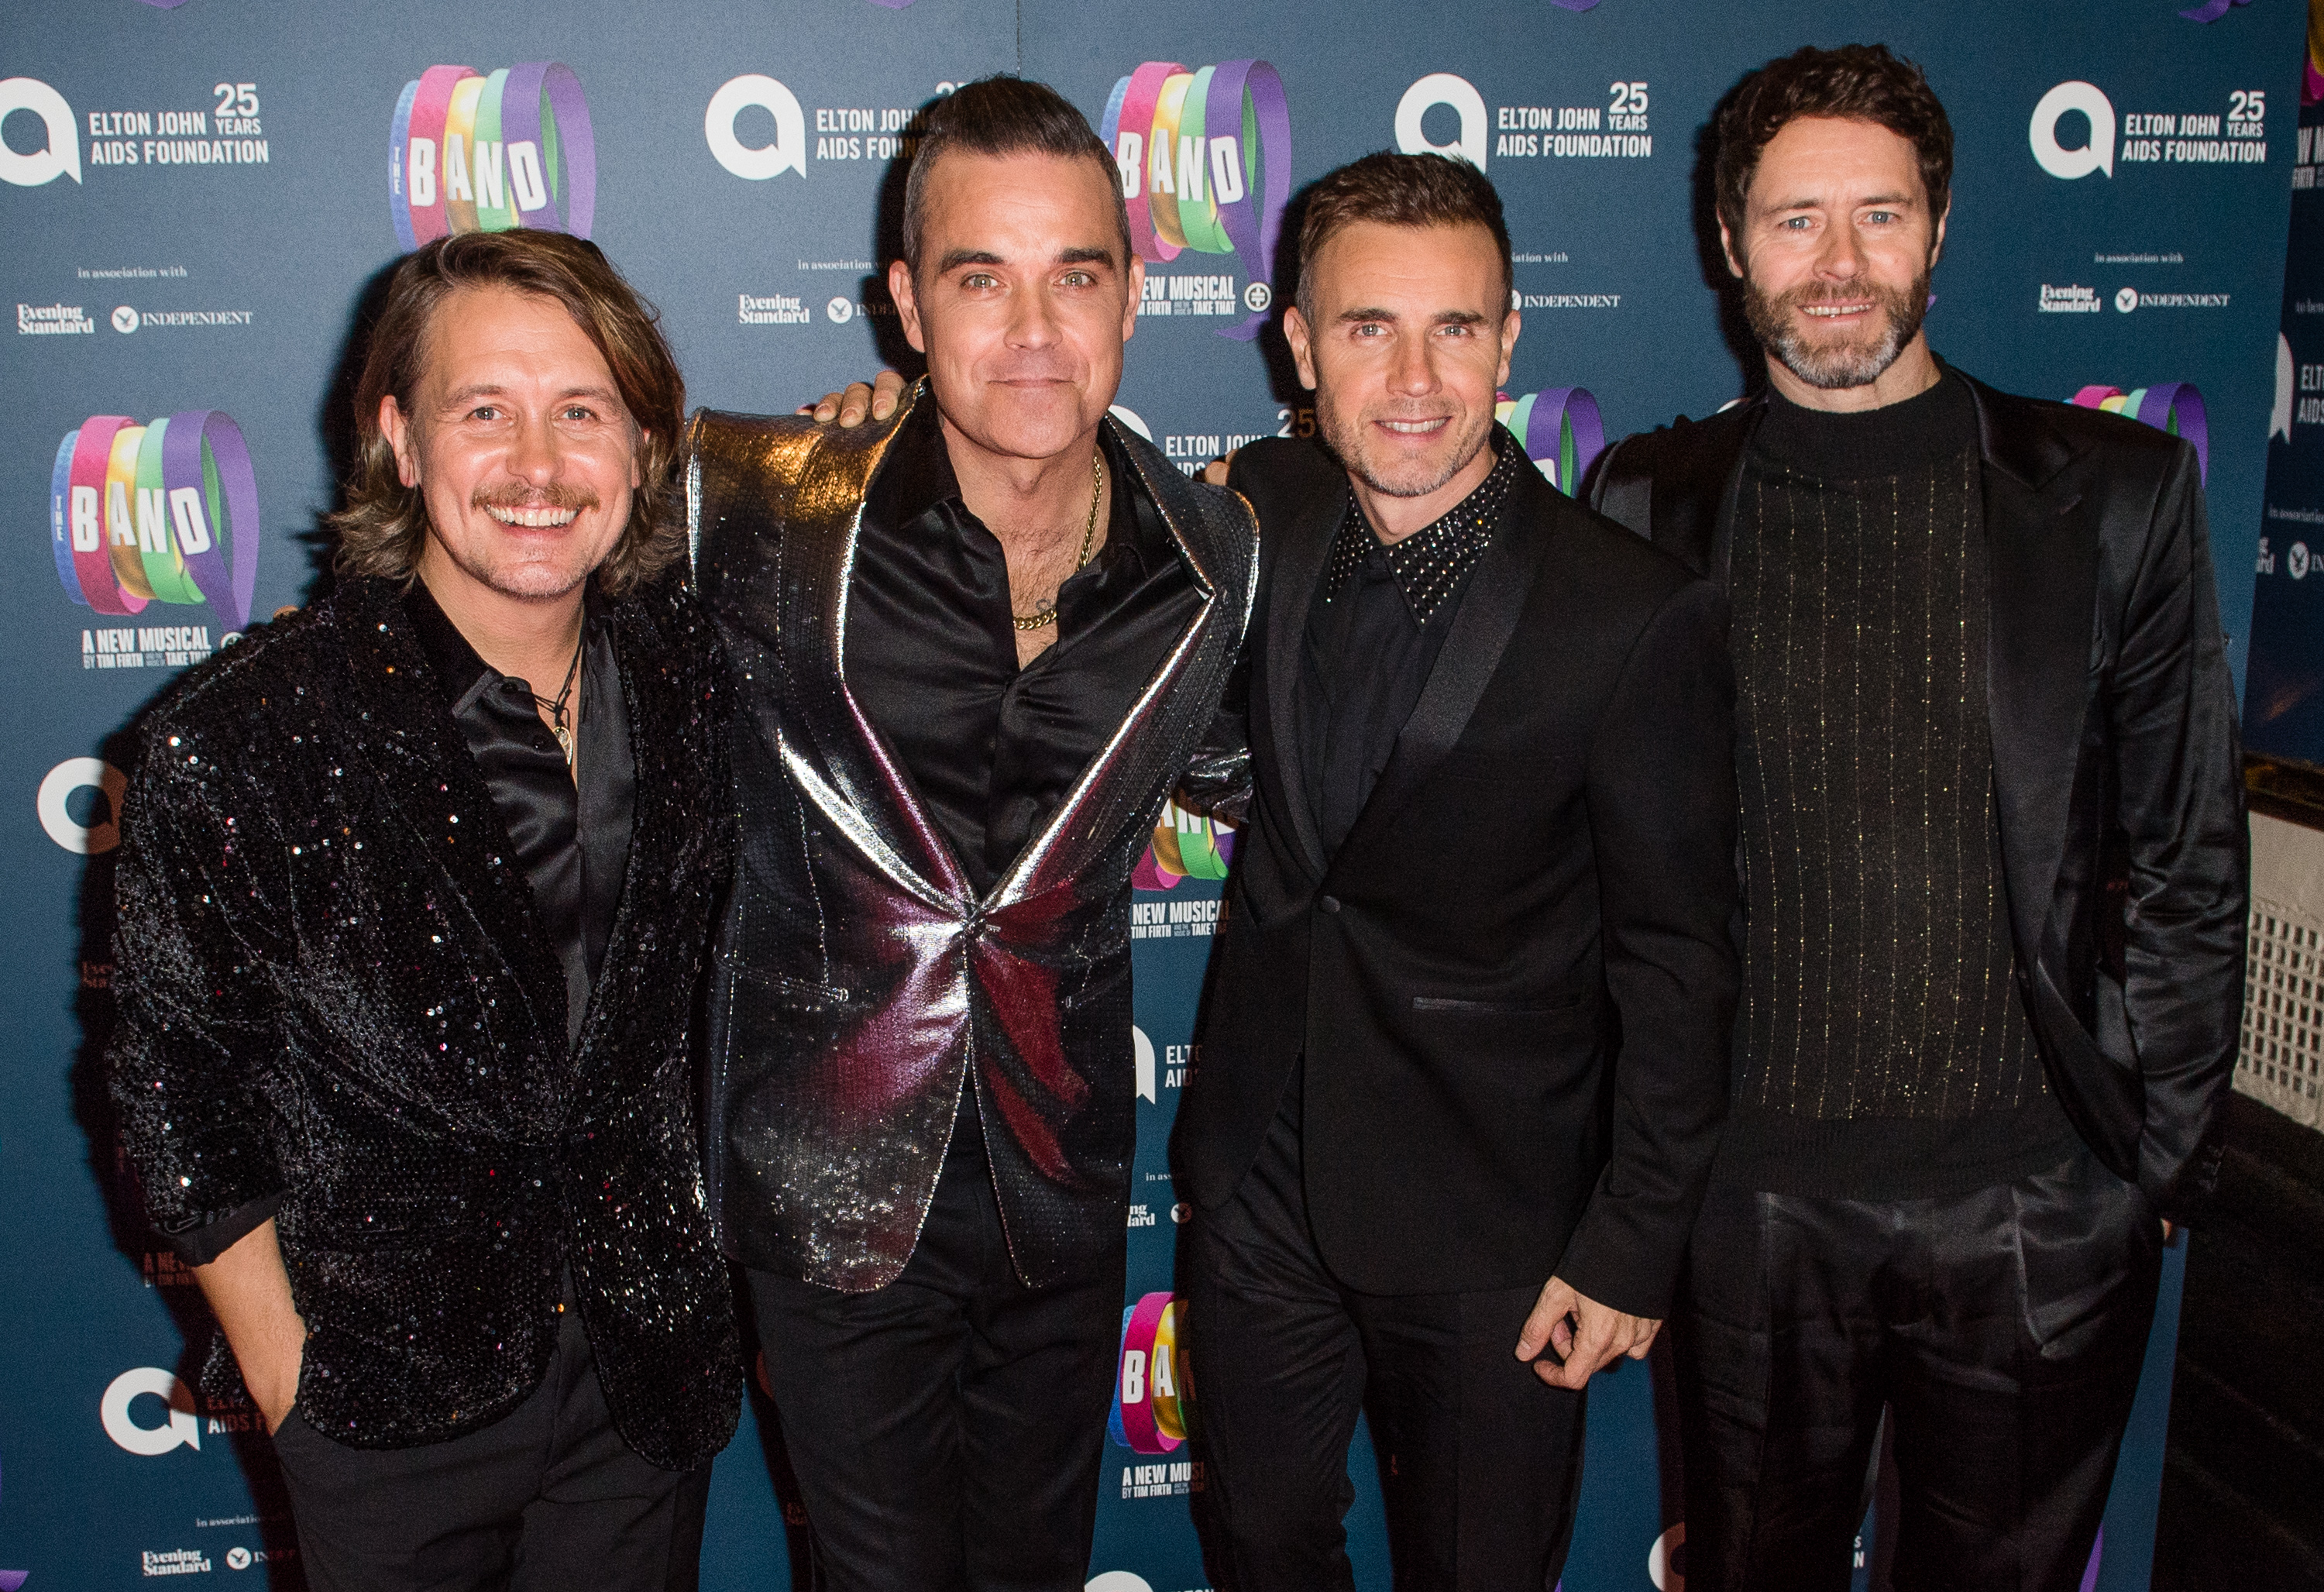 Robbie Williams teases Take That reunion on tour and we honestly can't cope